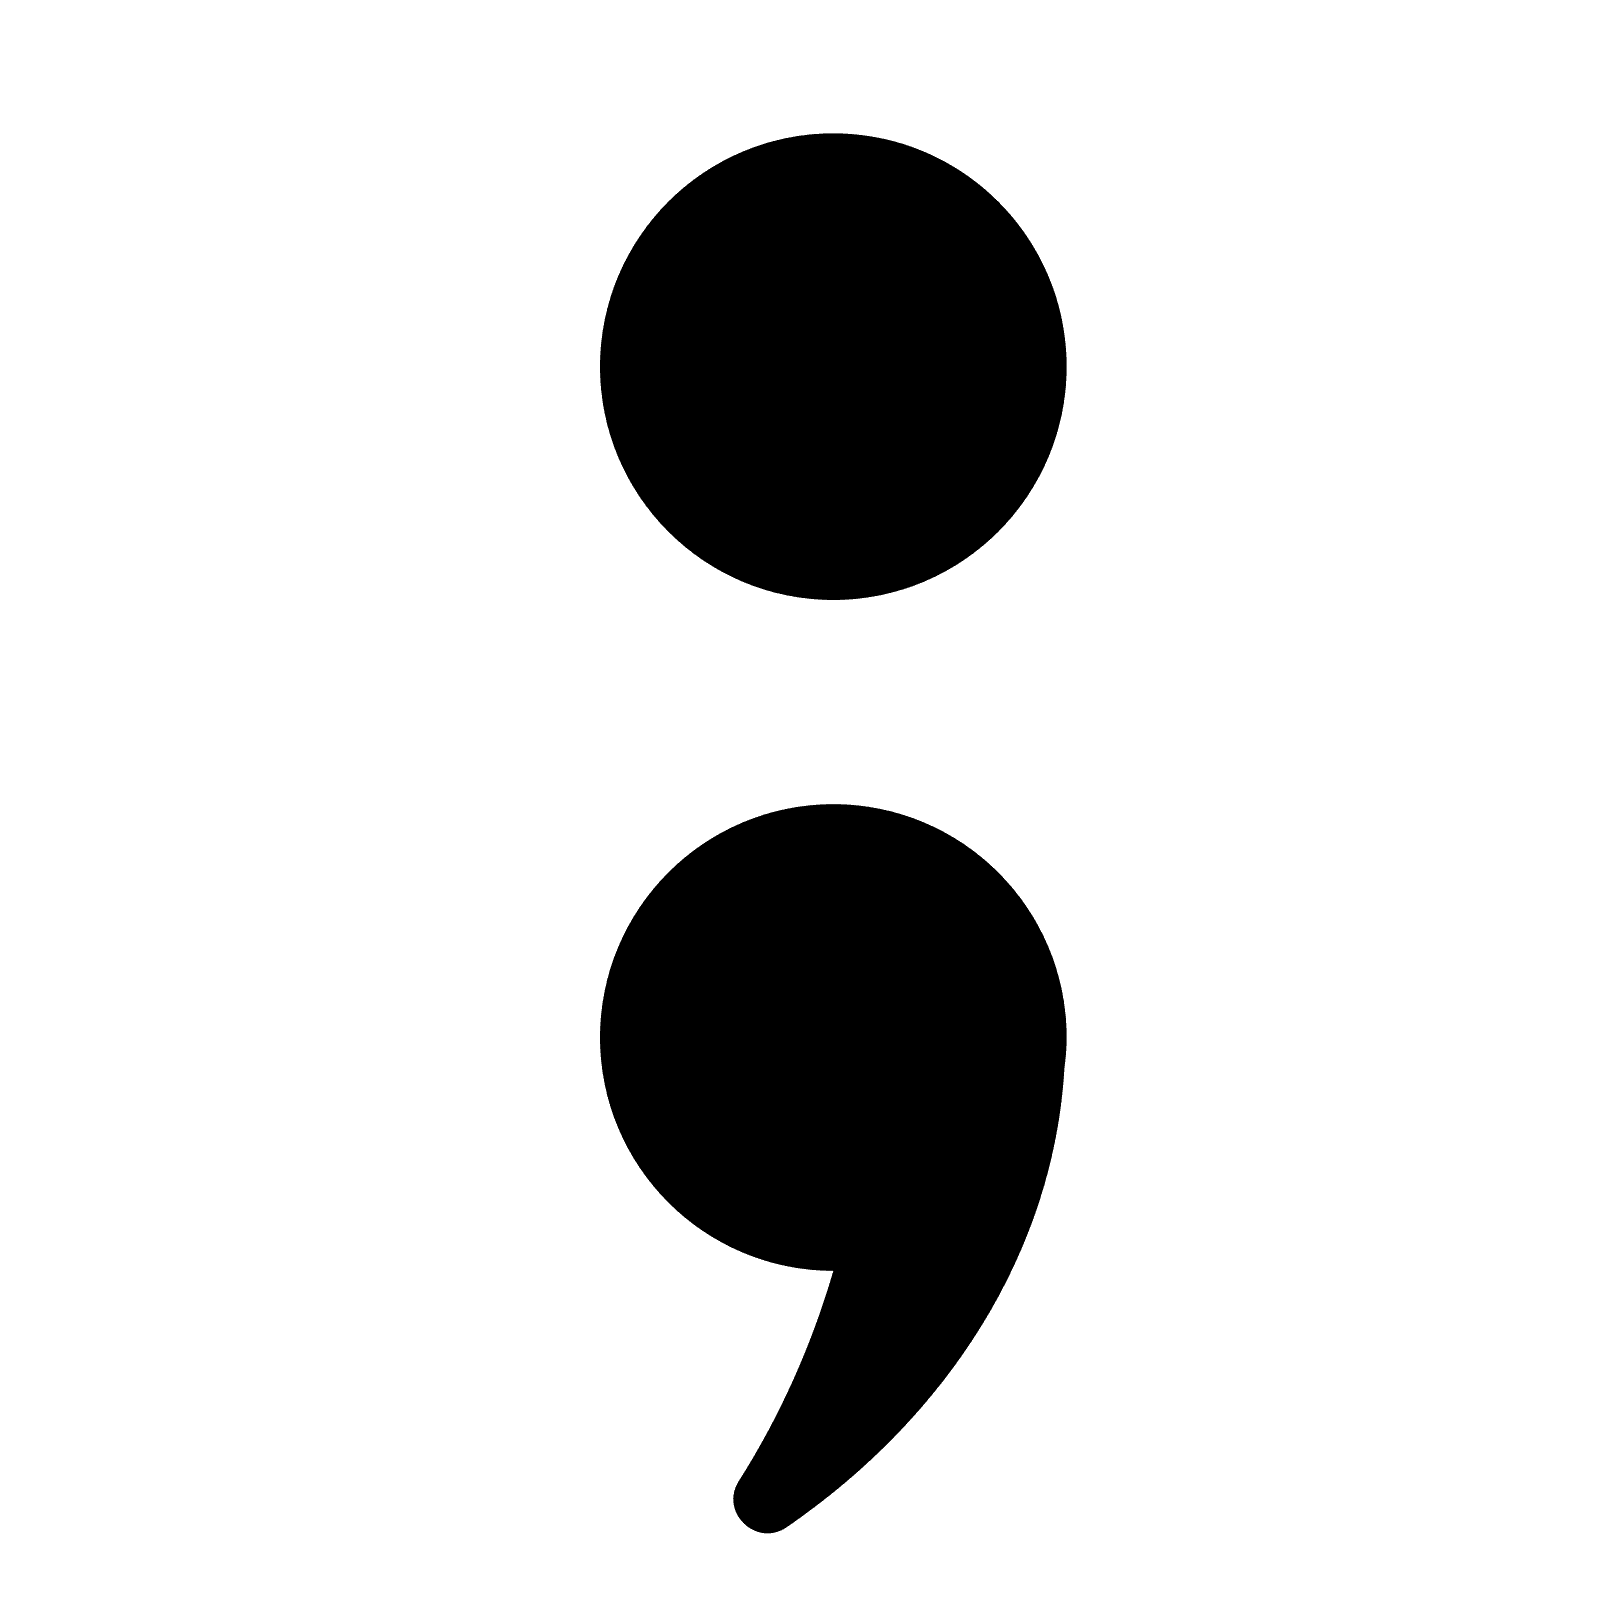 Semicolon drawing suicidal. Yorkville il official website